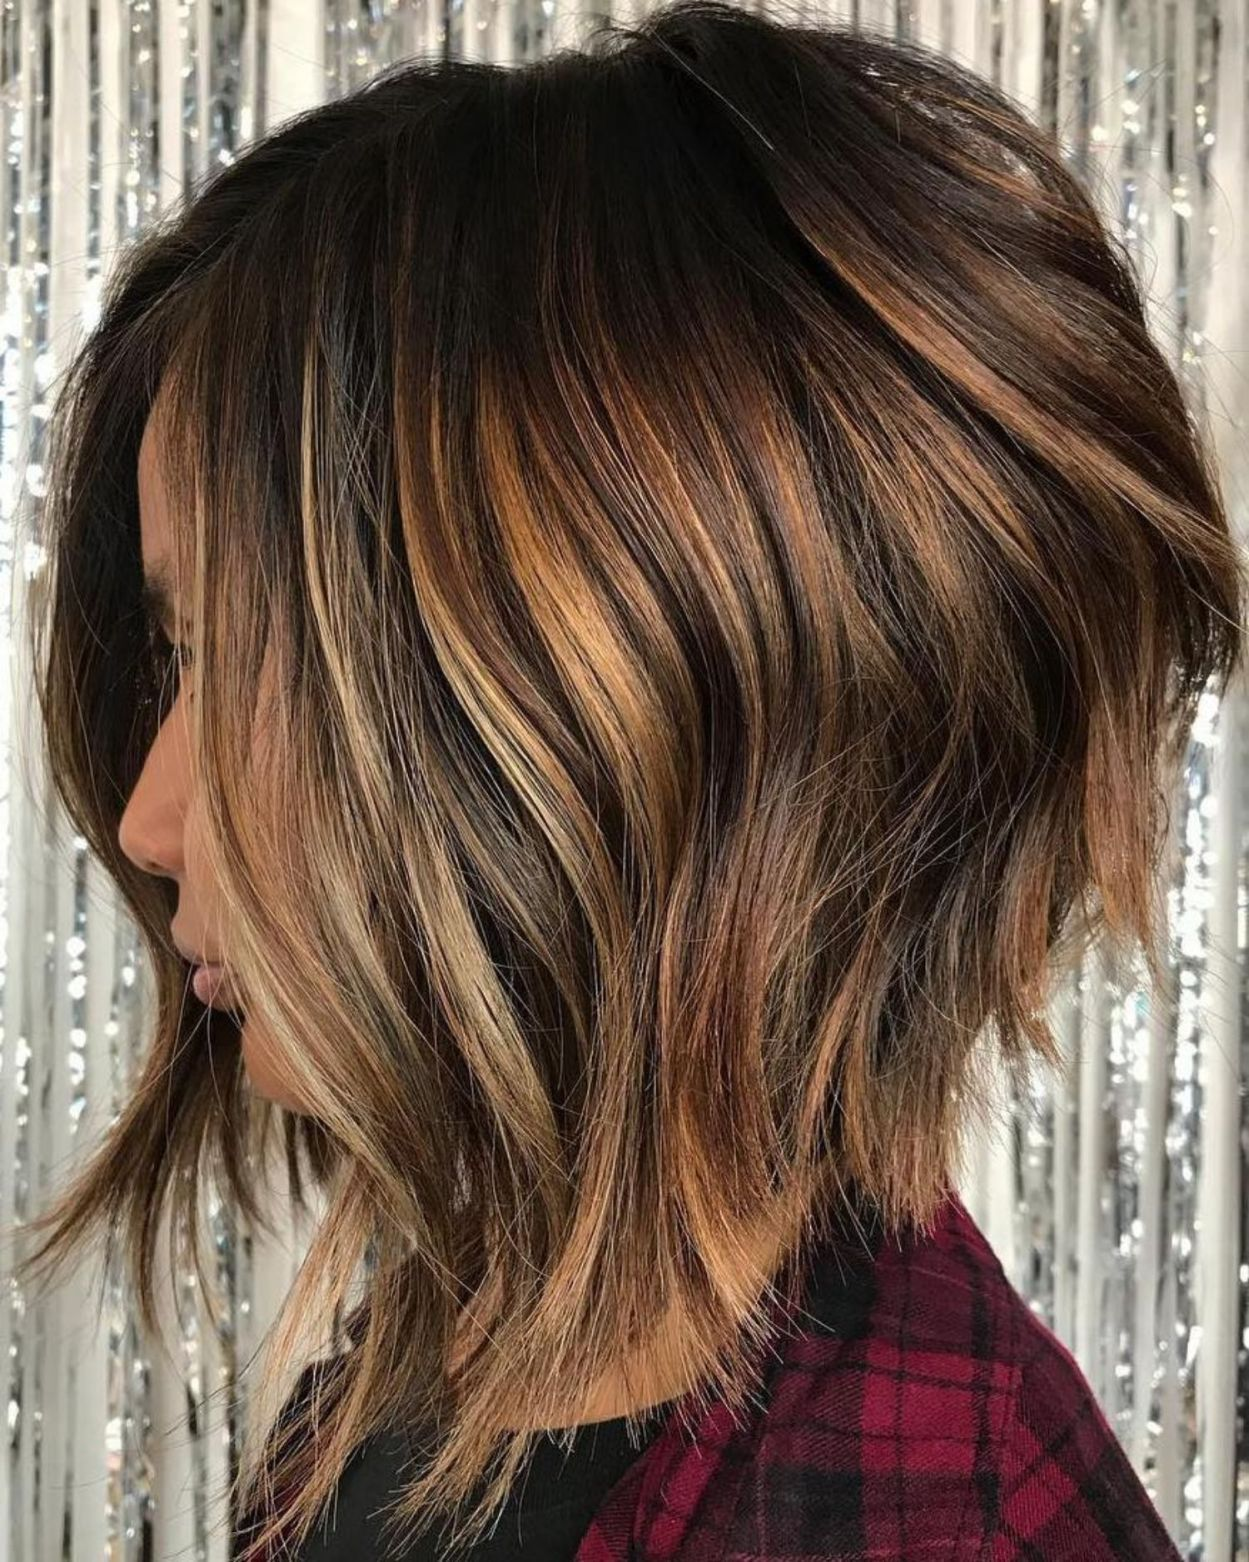 15++ Pictures of angled bob hairstyles ideas